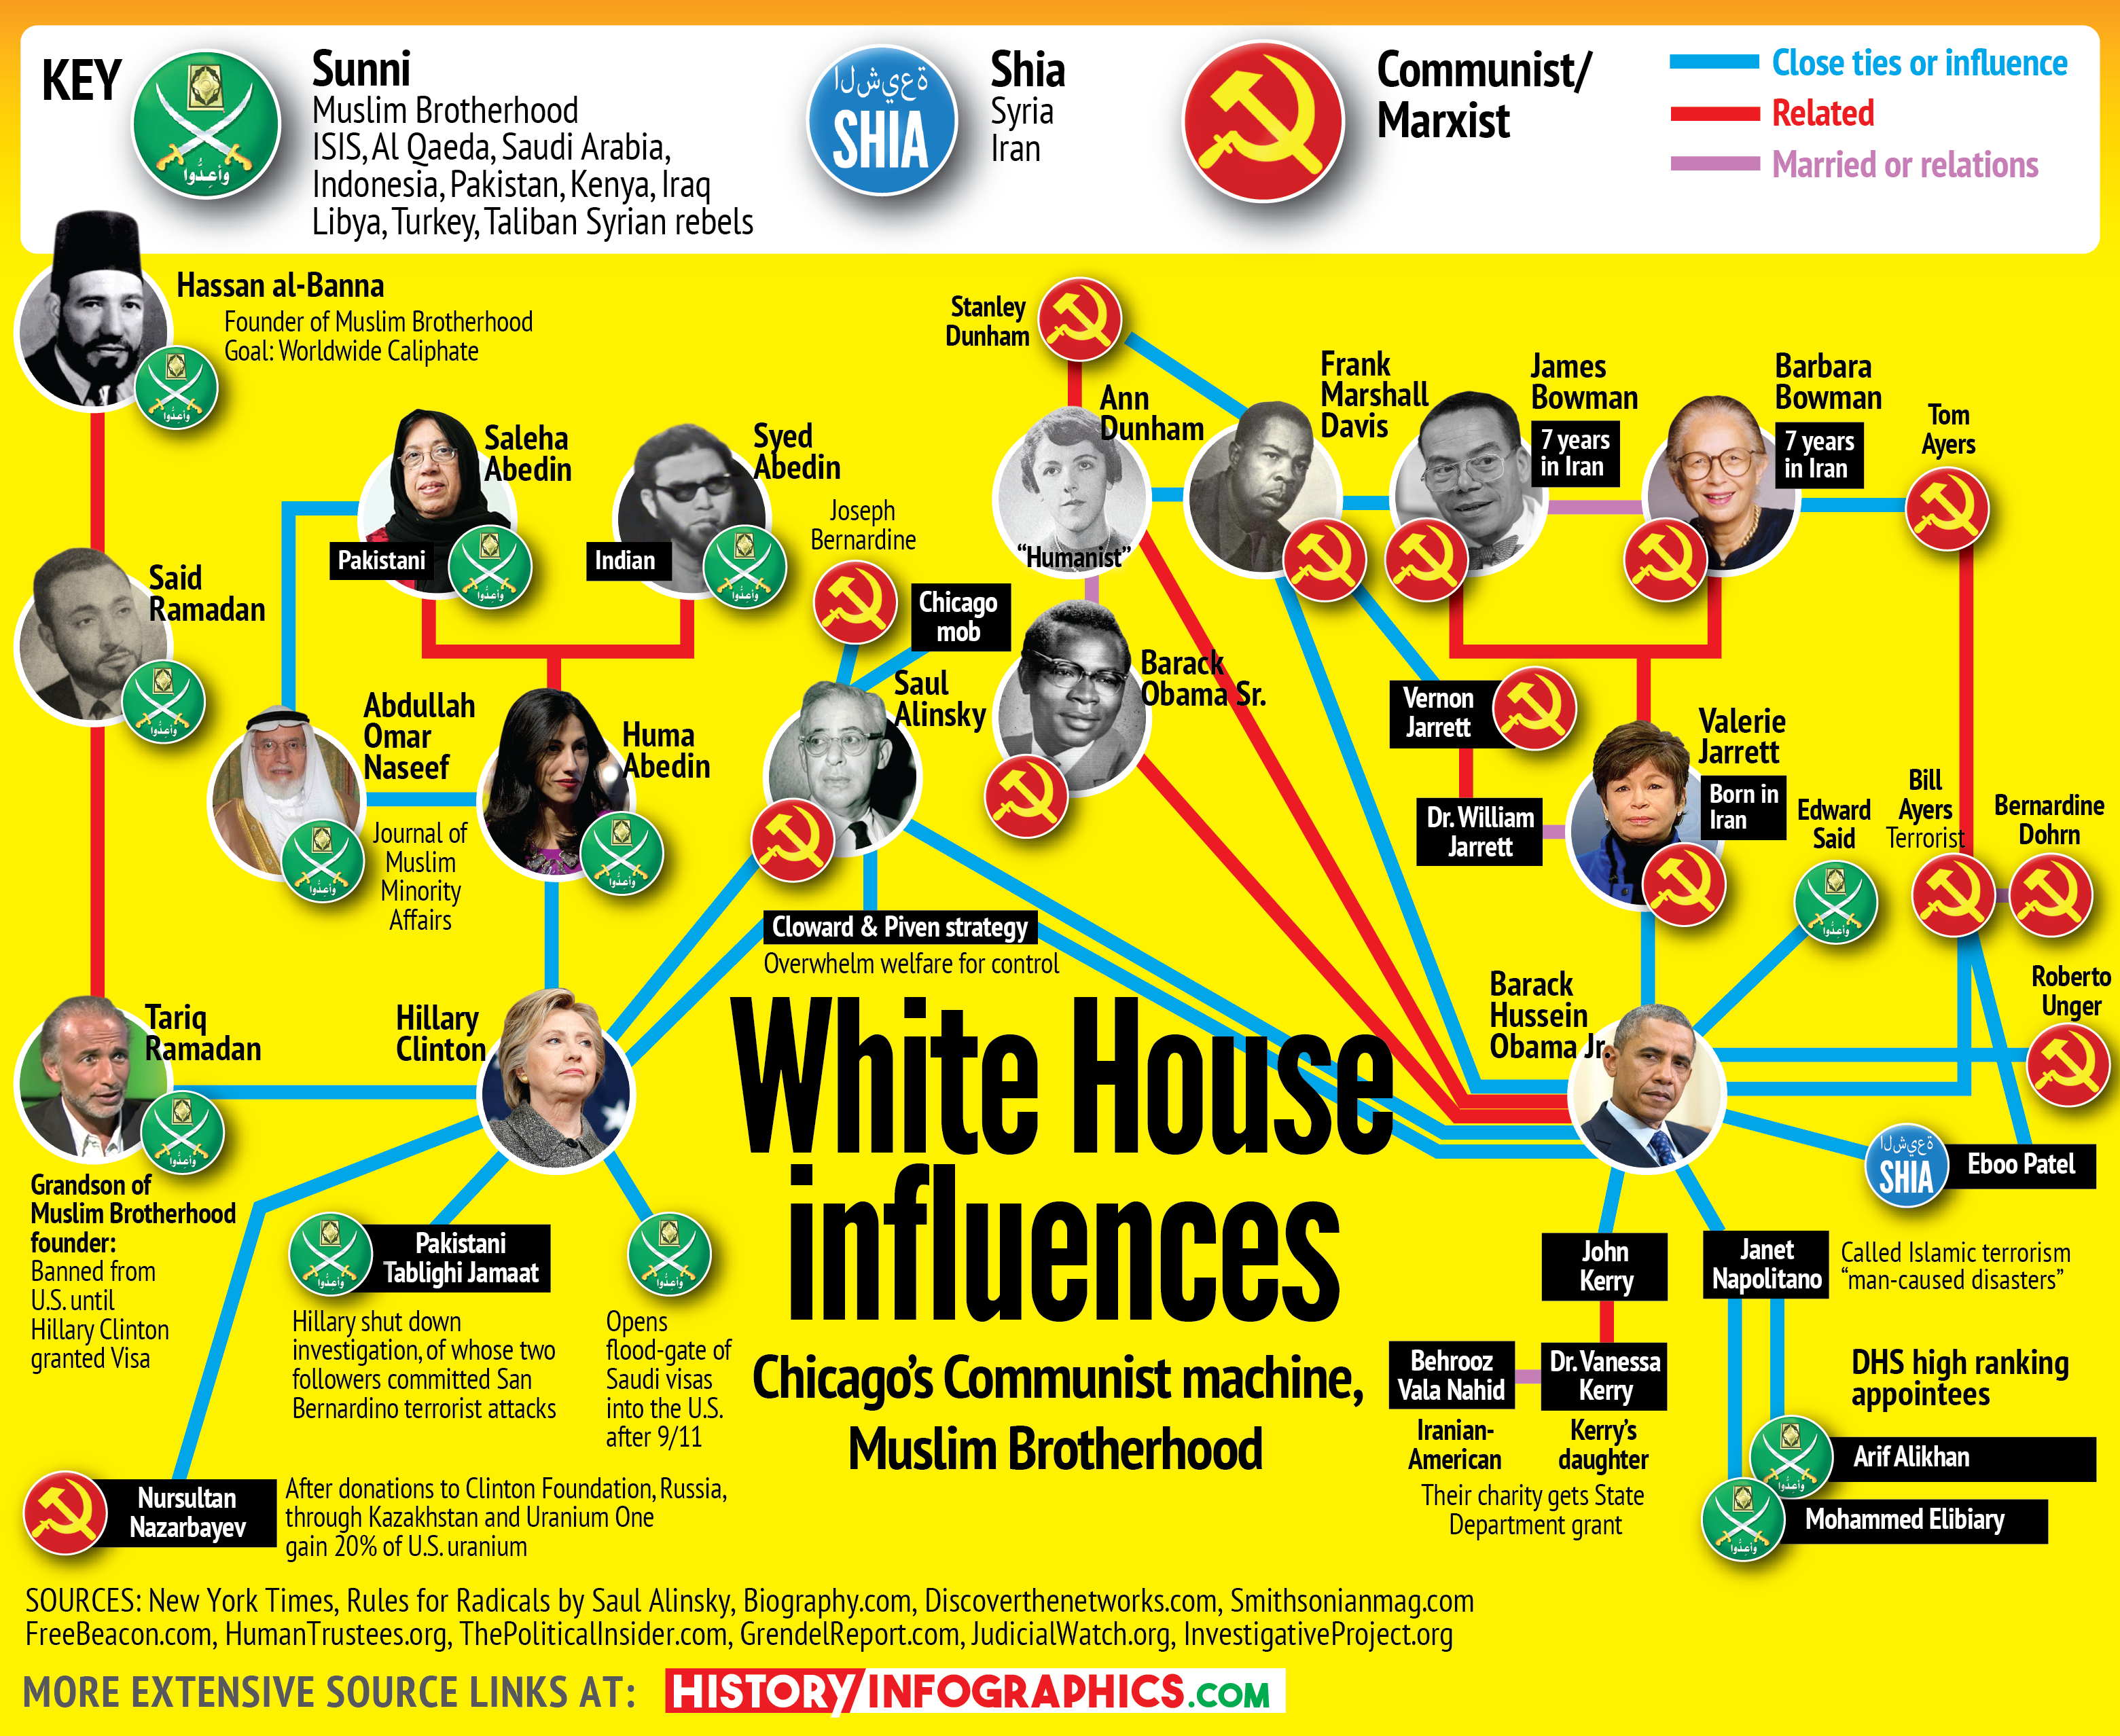 muslims-communists-in-white-house